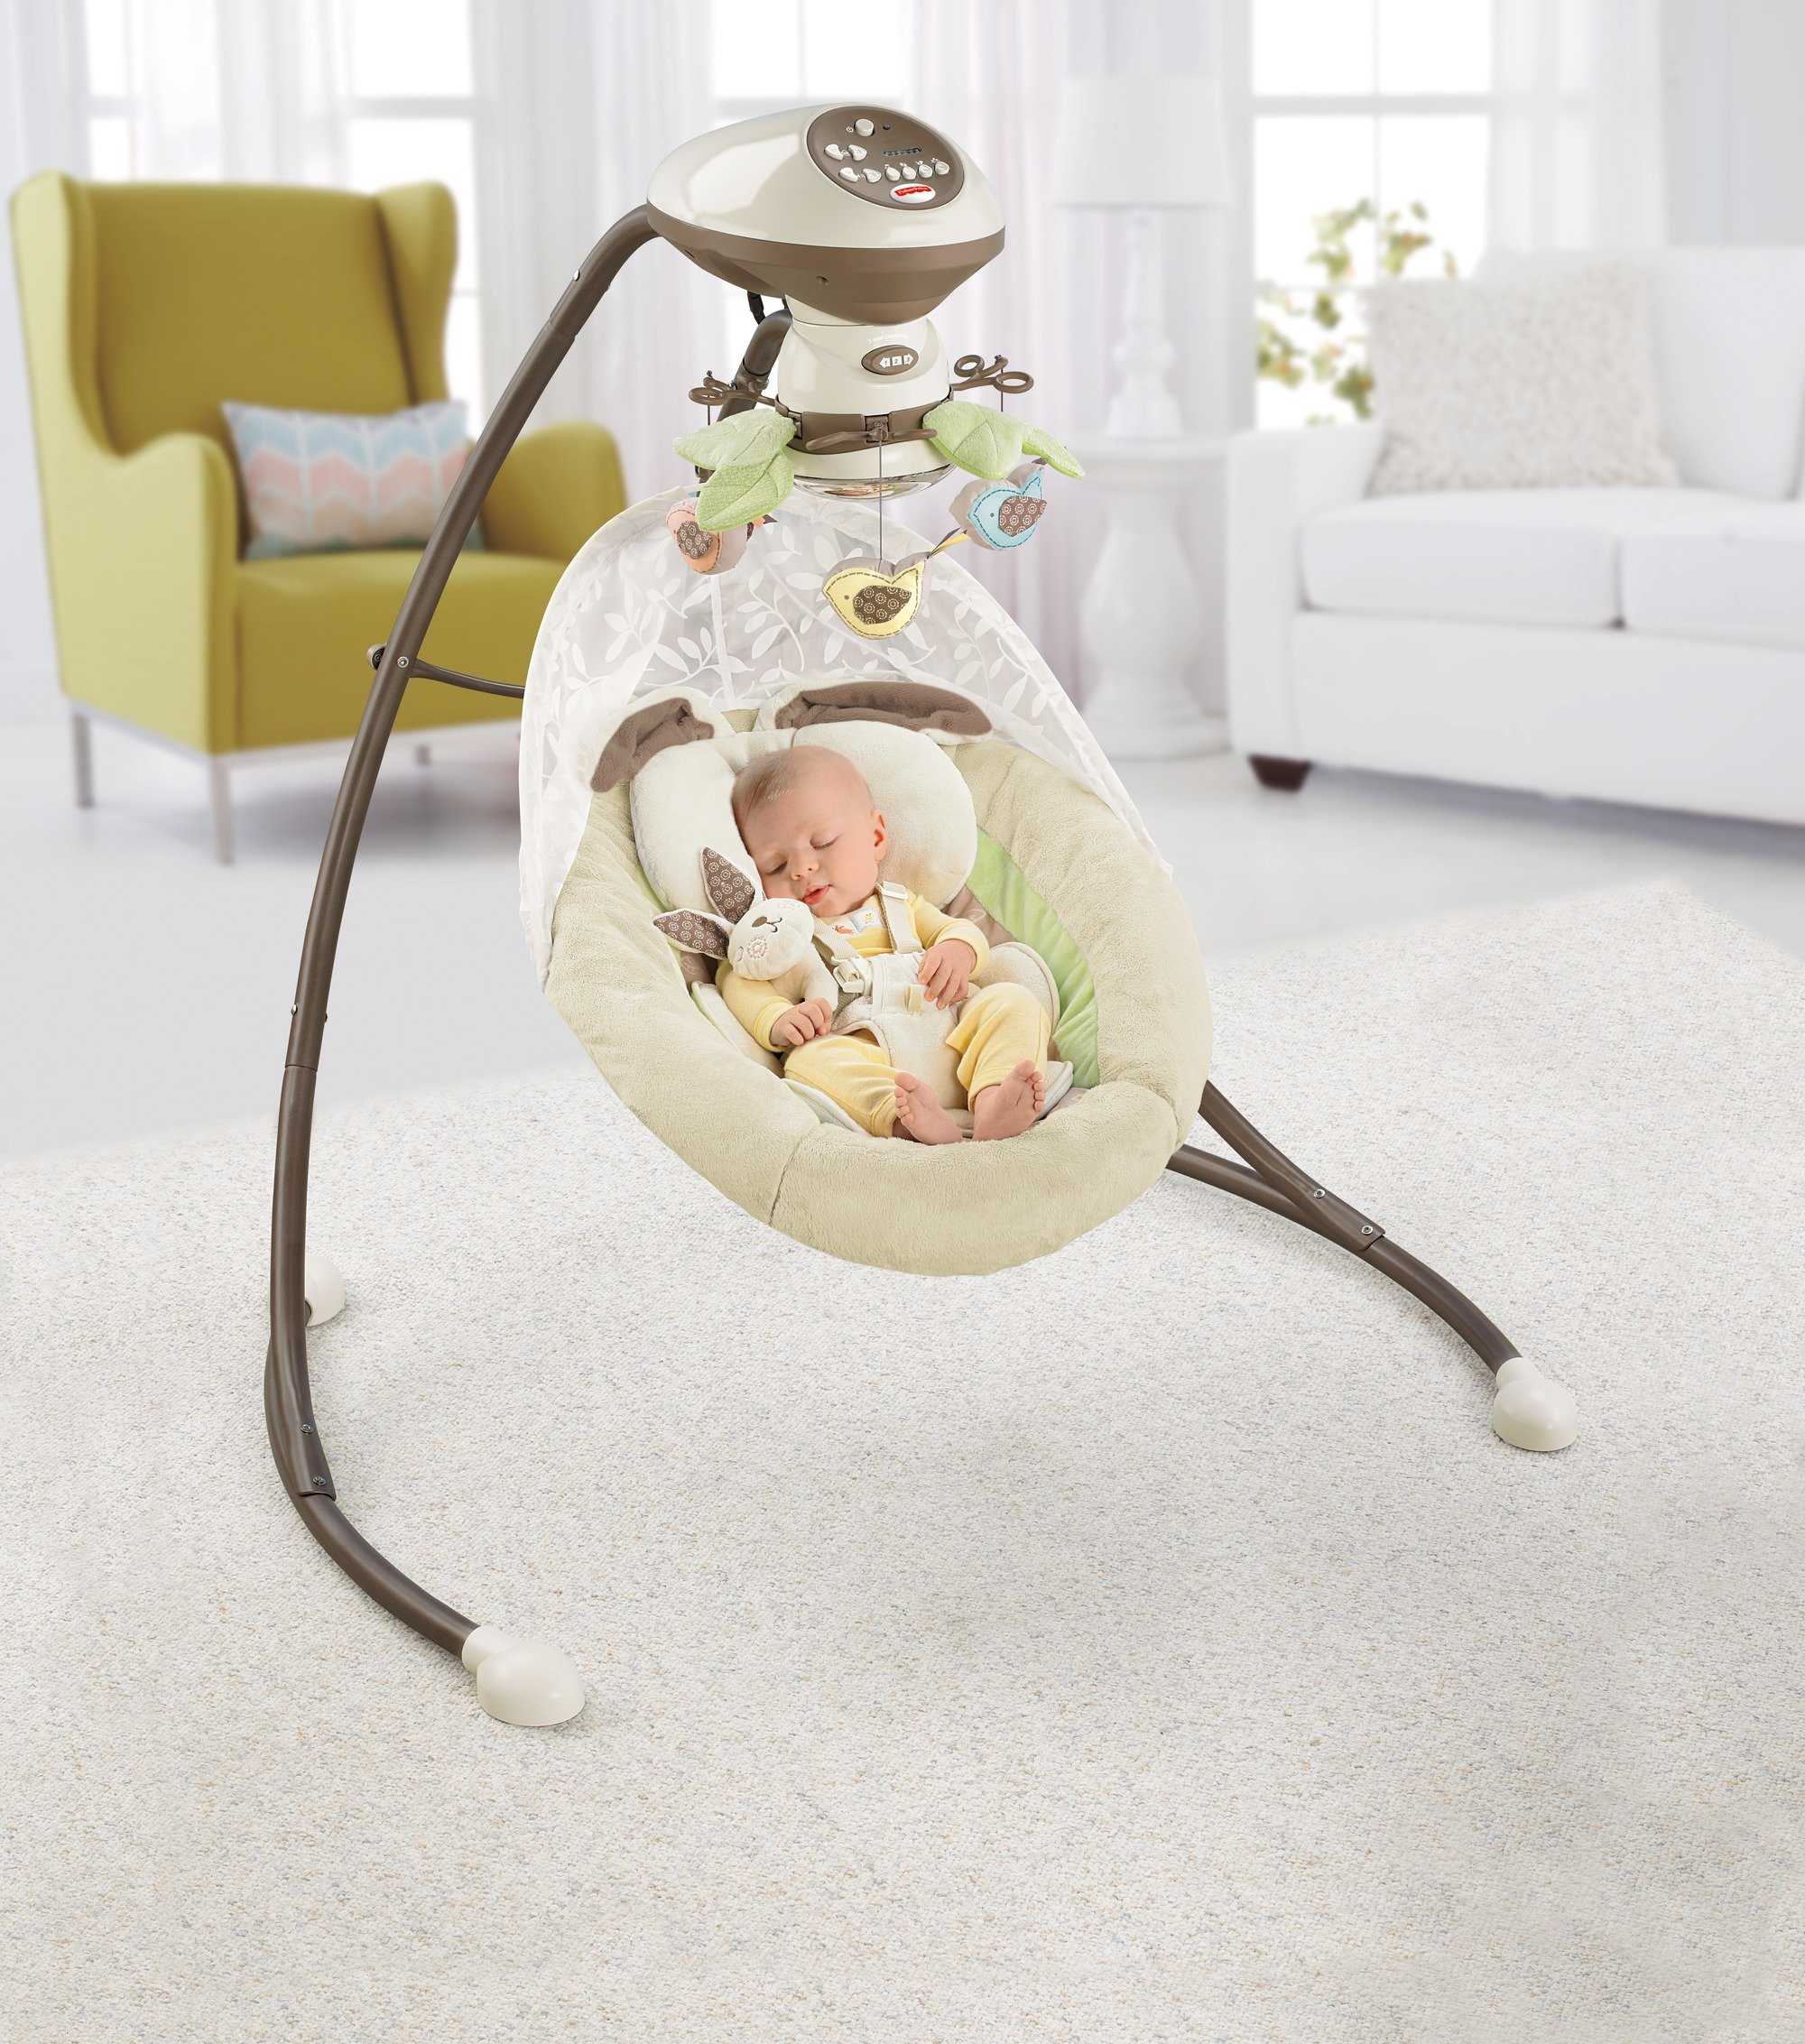 Fisher-Price Snugabunny Cradle 'n Swing with Smart Swing Technology by Fisher-Price (Image #2)